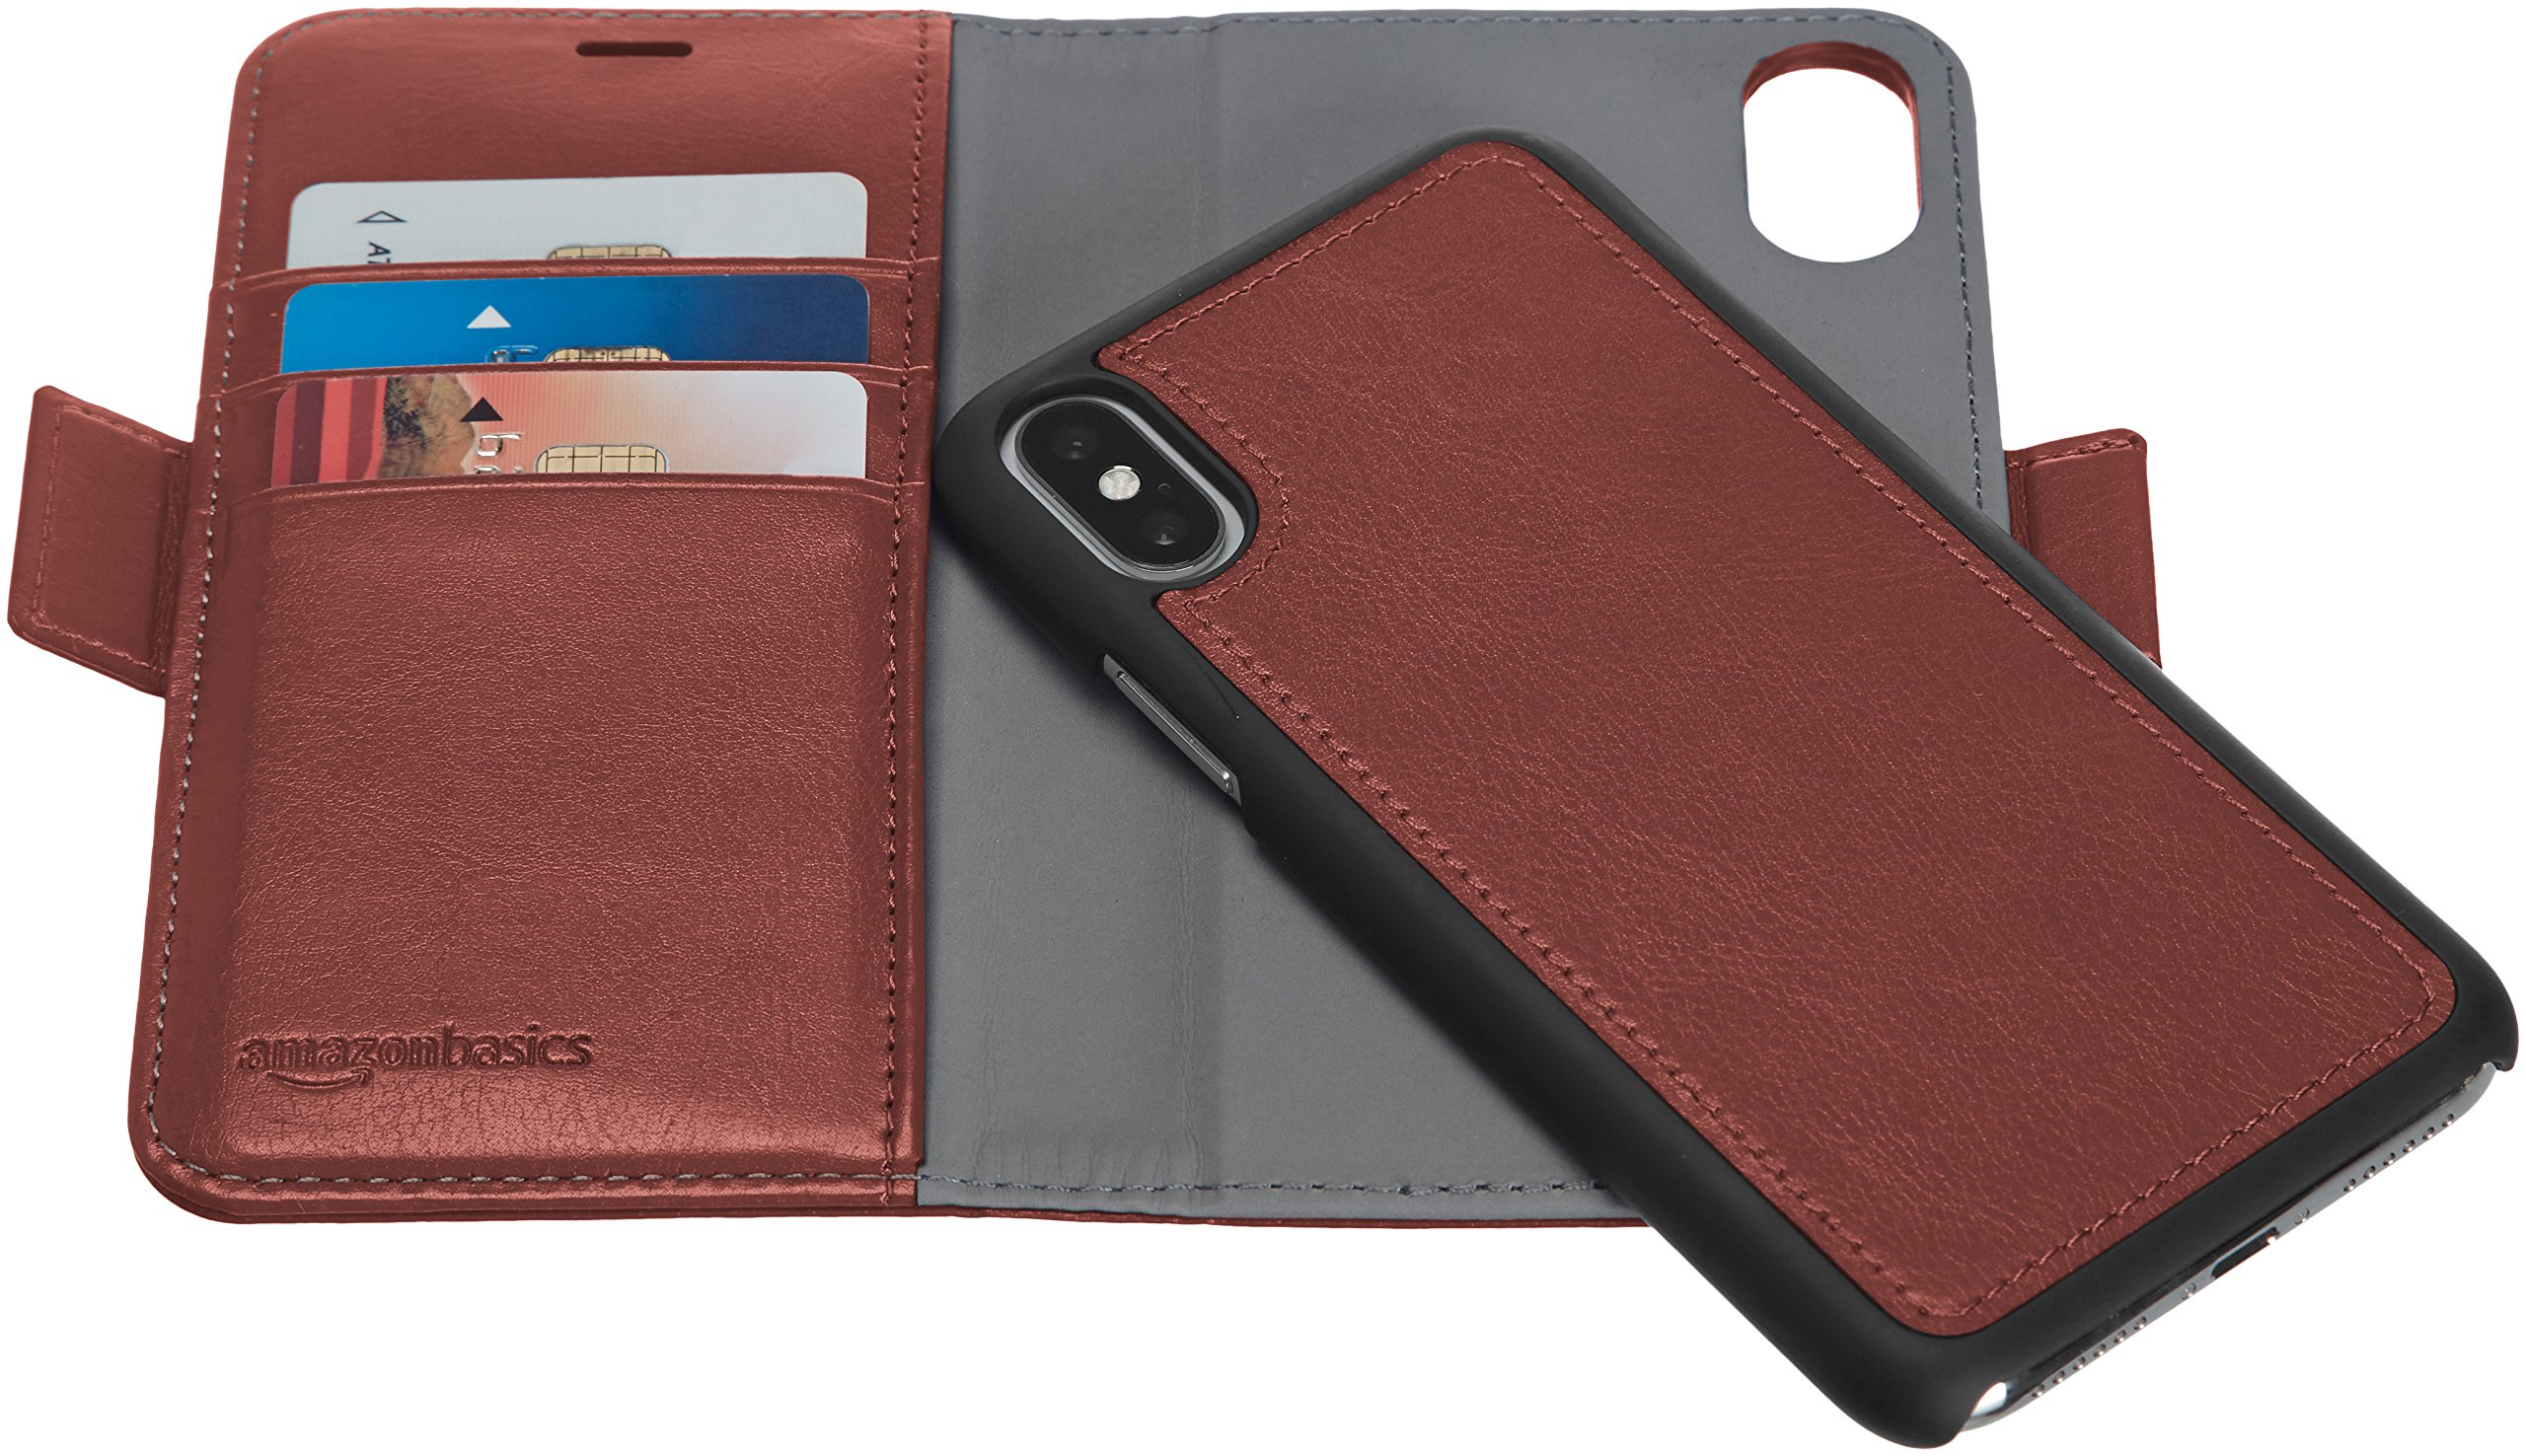 AmazonBasics iPhone X PU Leather Wallet Detachable Case, Dark Brown by AmazonBasics (Image #5)